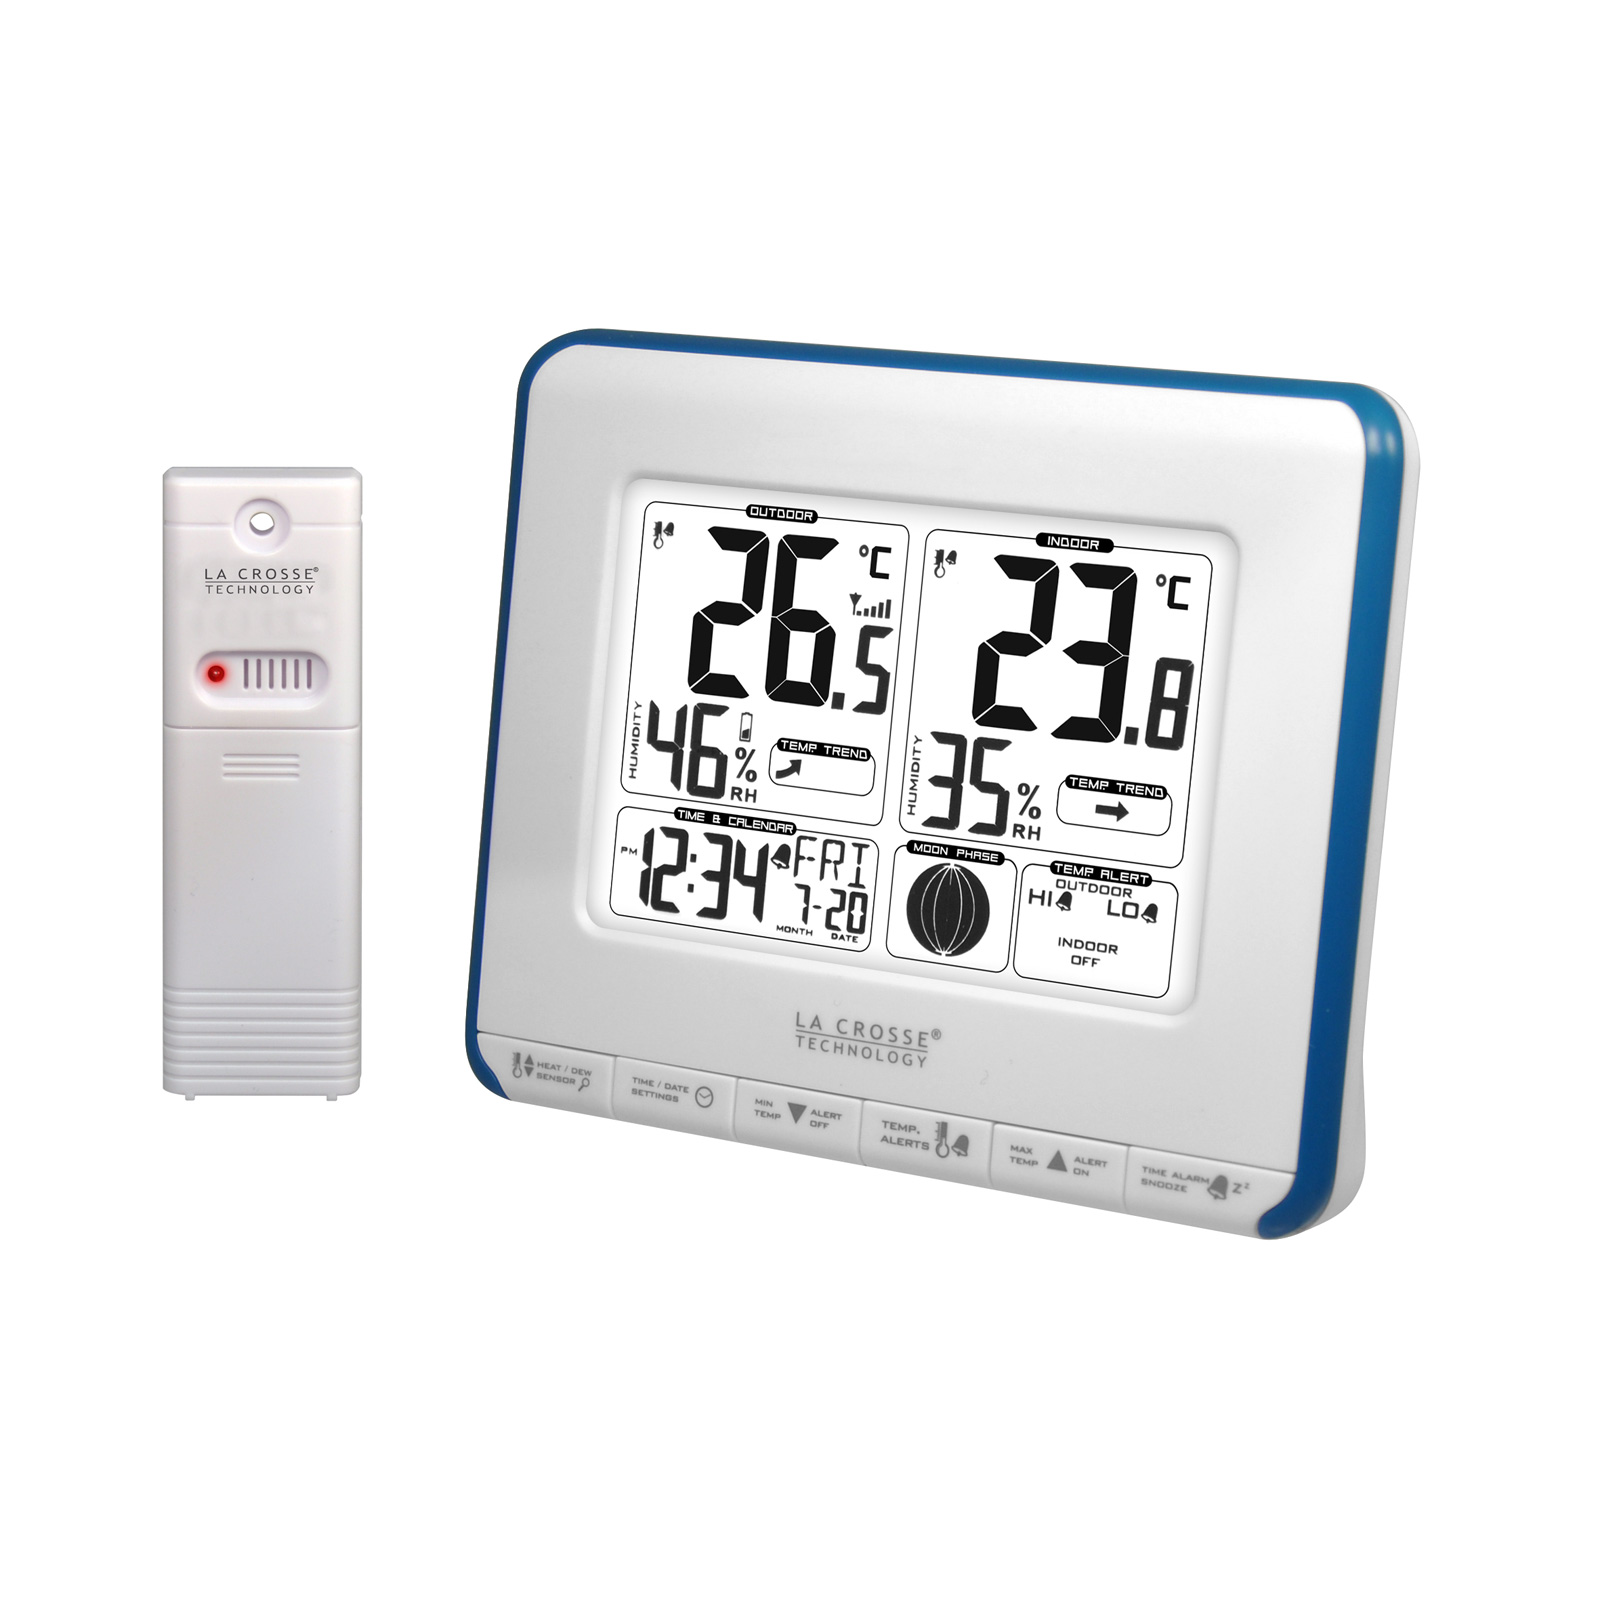 La crosse technology ws6812 bleu station m t o la crosse for Station meteo temperature interieure et exterieure